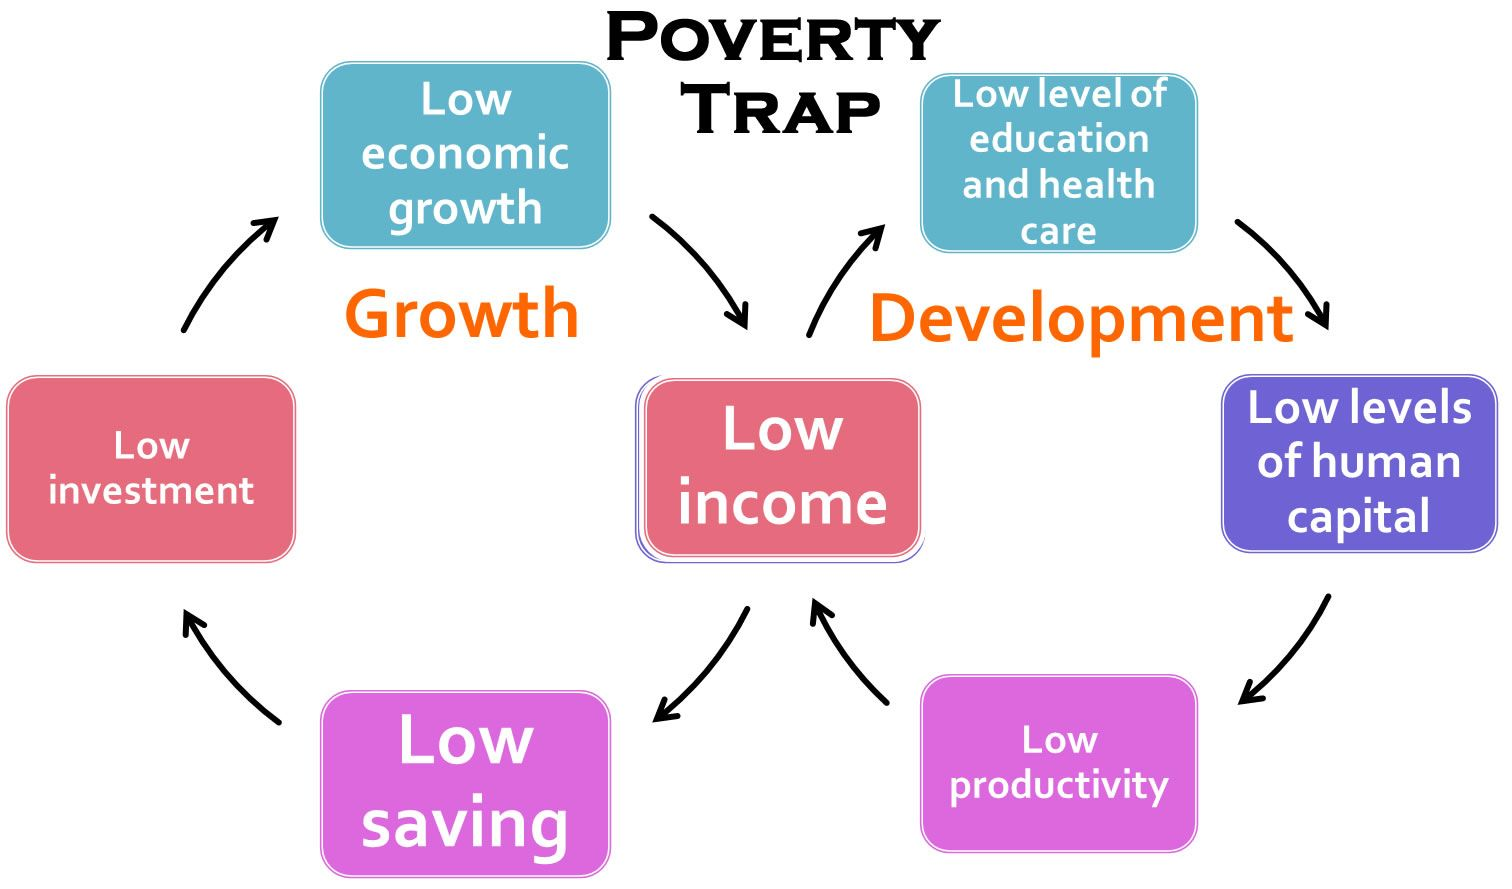 best images about what i think about poverty issues 17 best images about what i think about poverty issues explanation on the rich karl marx and geography